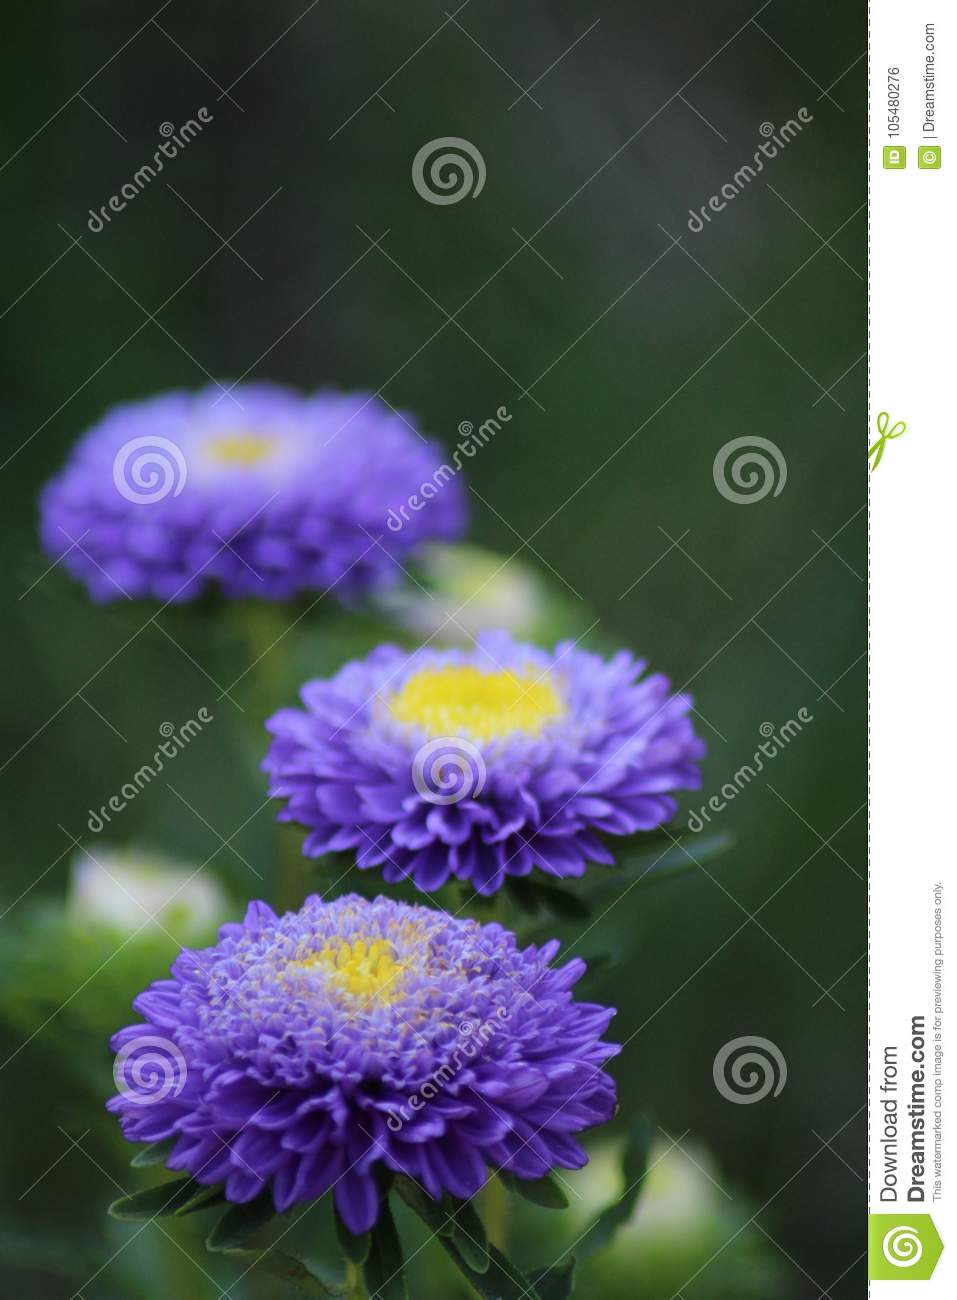 Purple Flower With A Yellow Center Stock Photo Image Of Summer